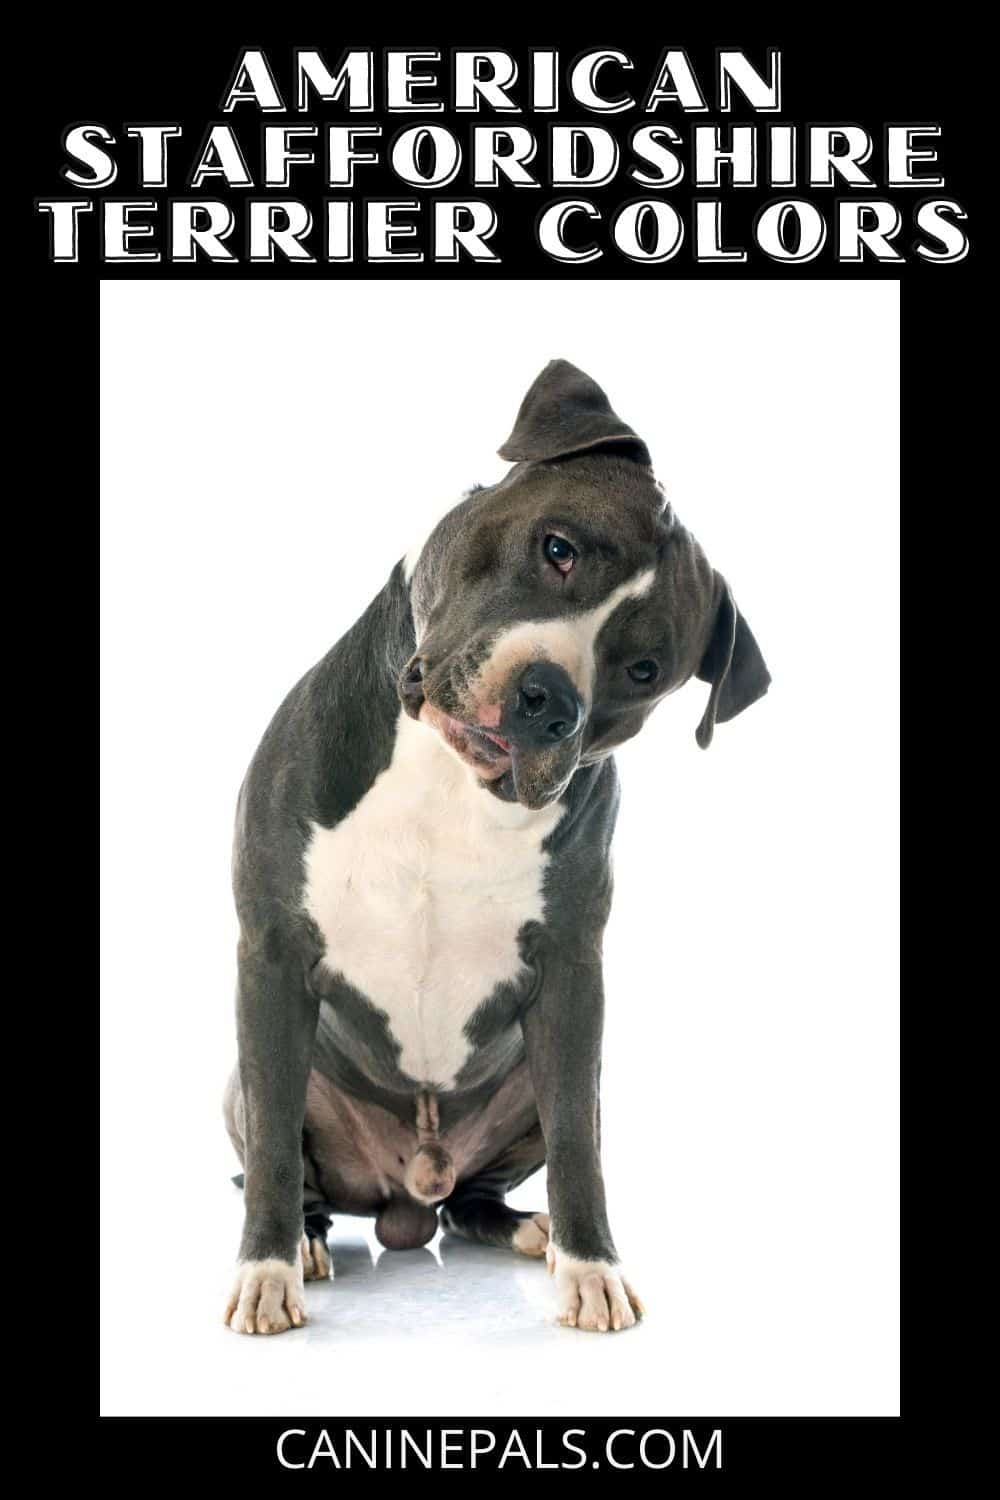 American Staffordshire Terrier Colors